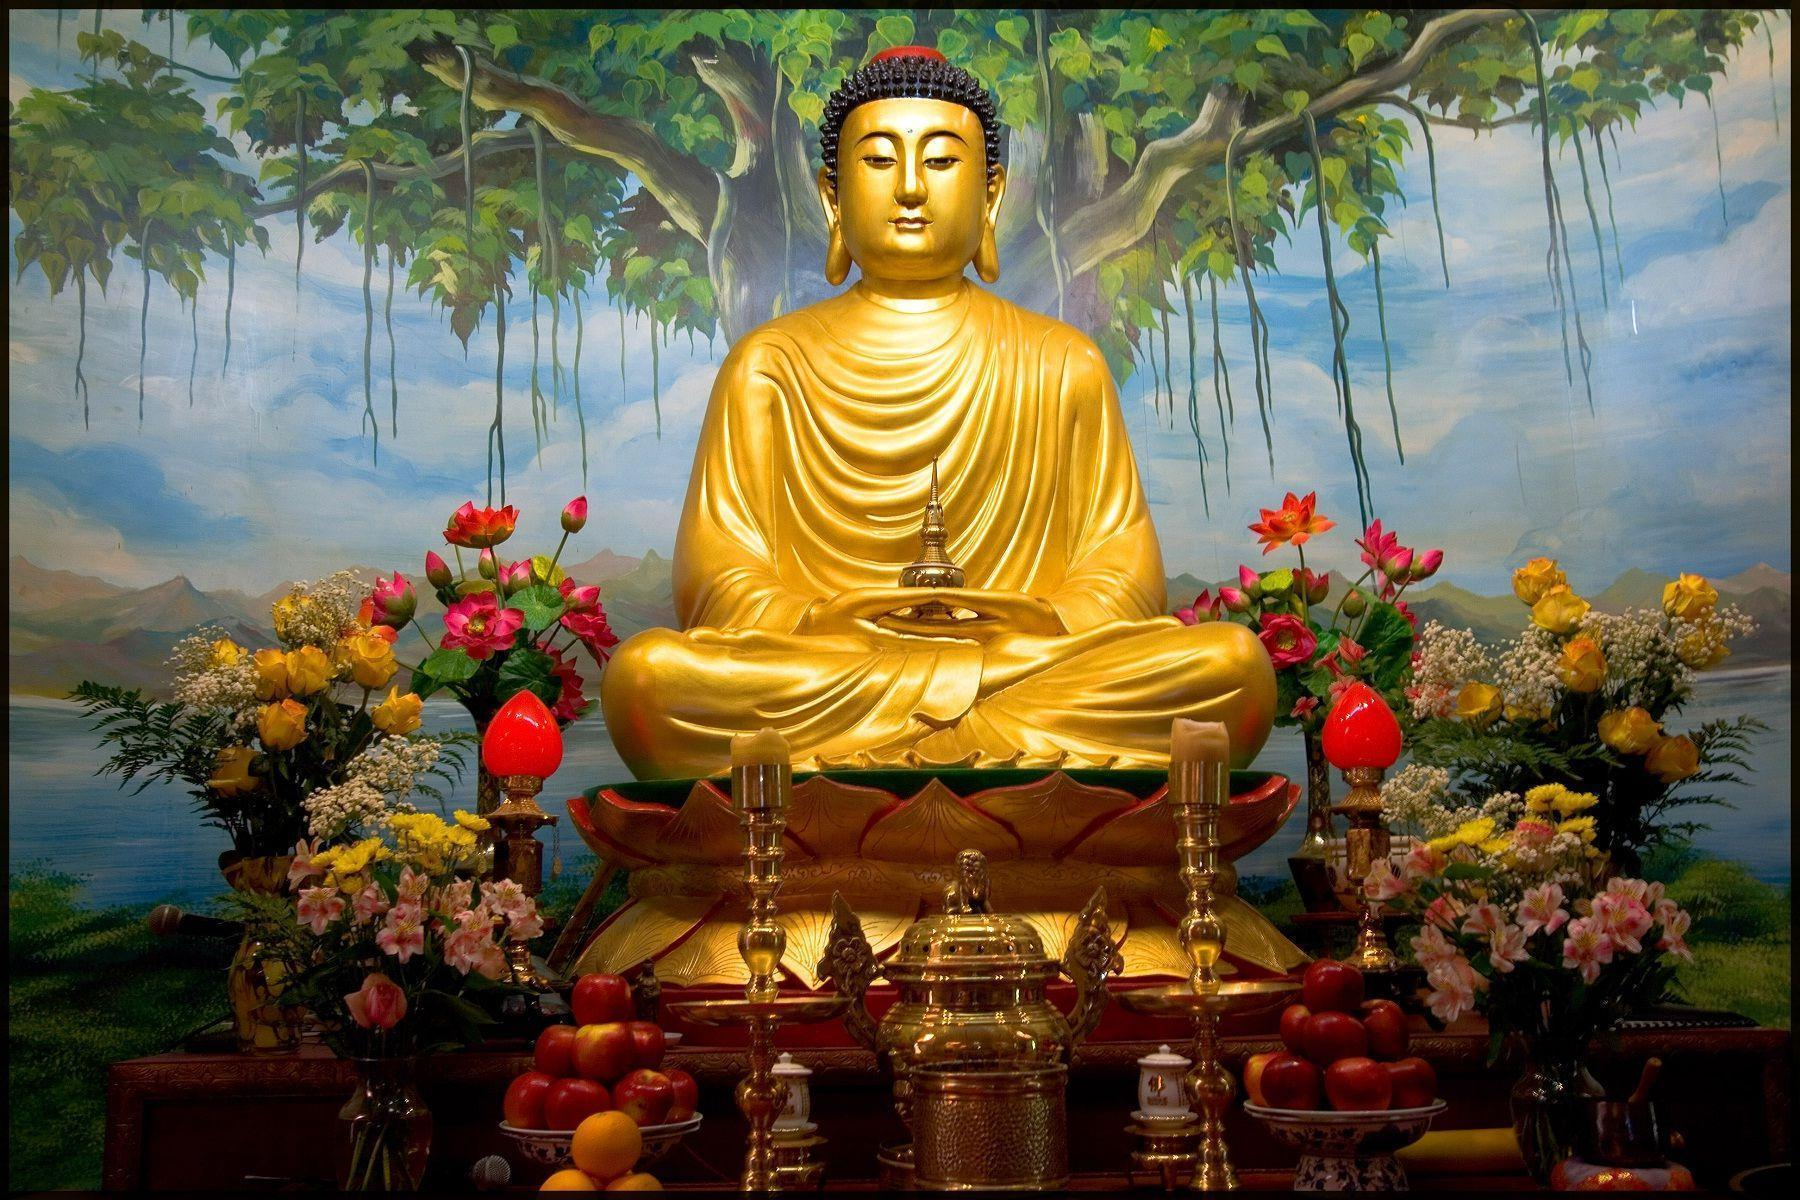 Gautama buddha wallpapers wallpaper cave - Gautama buddha hd pics ...